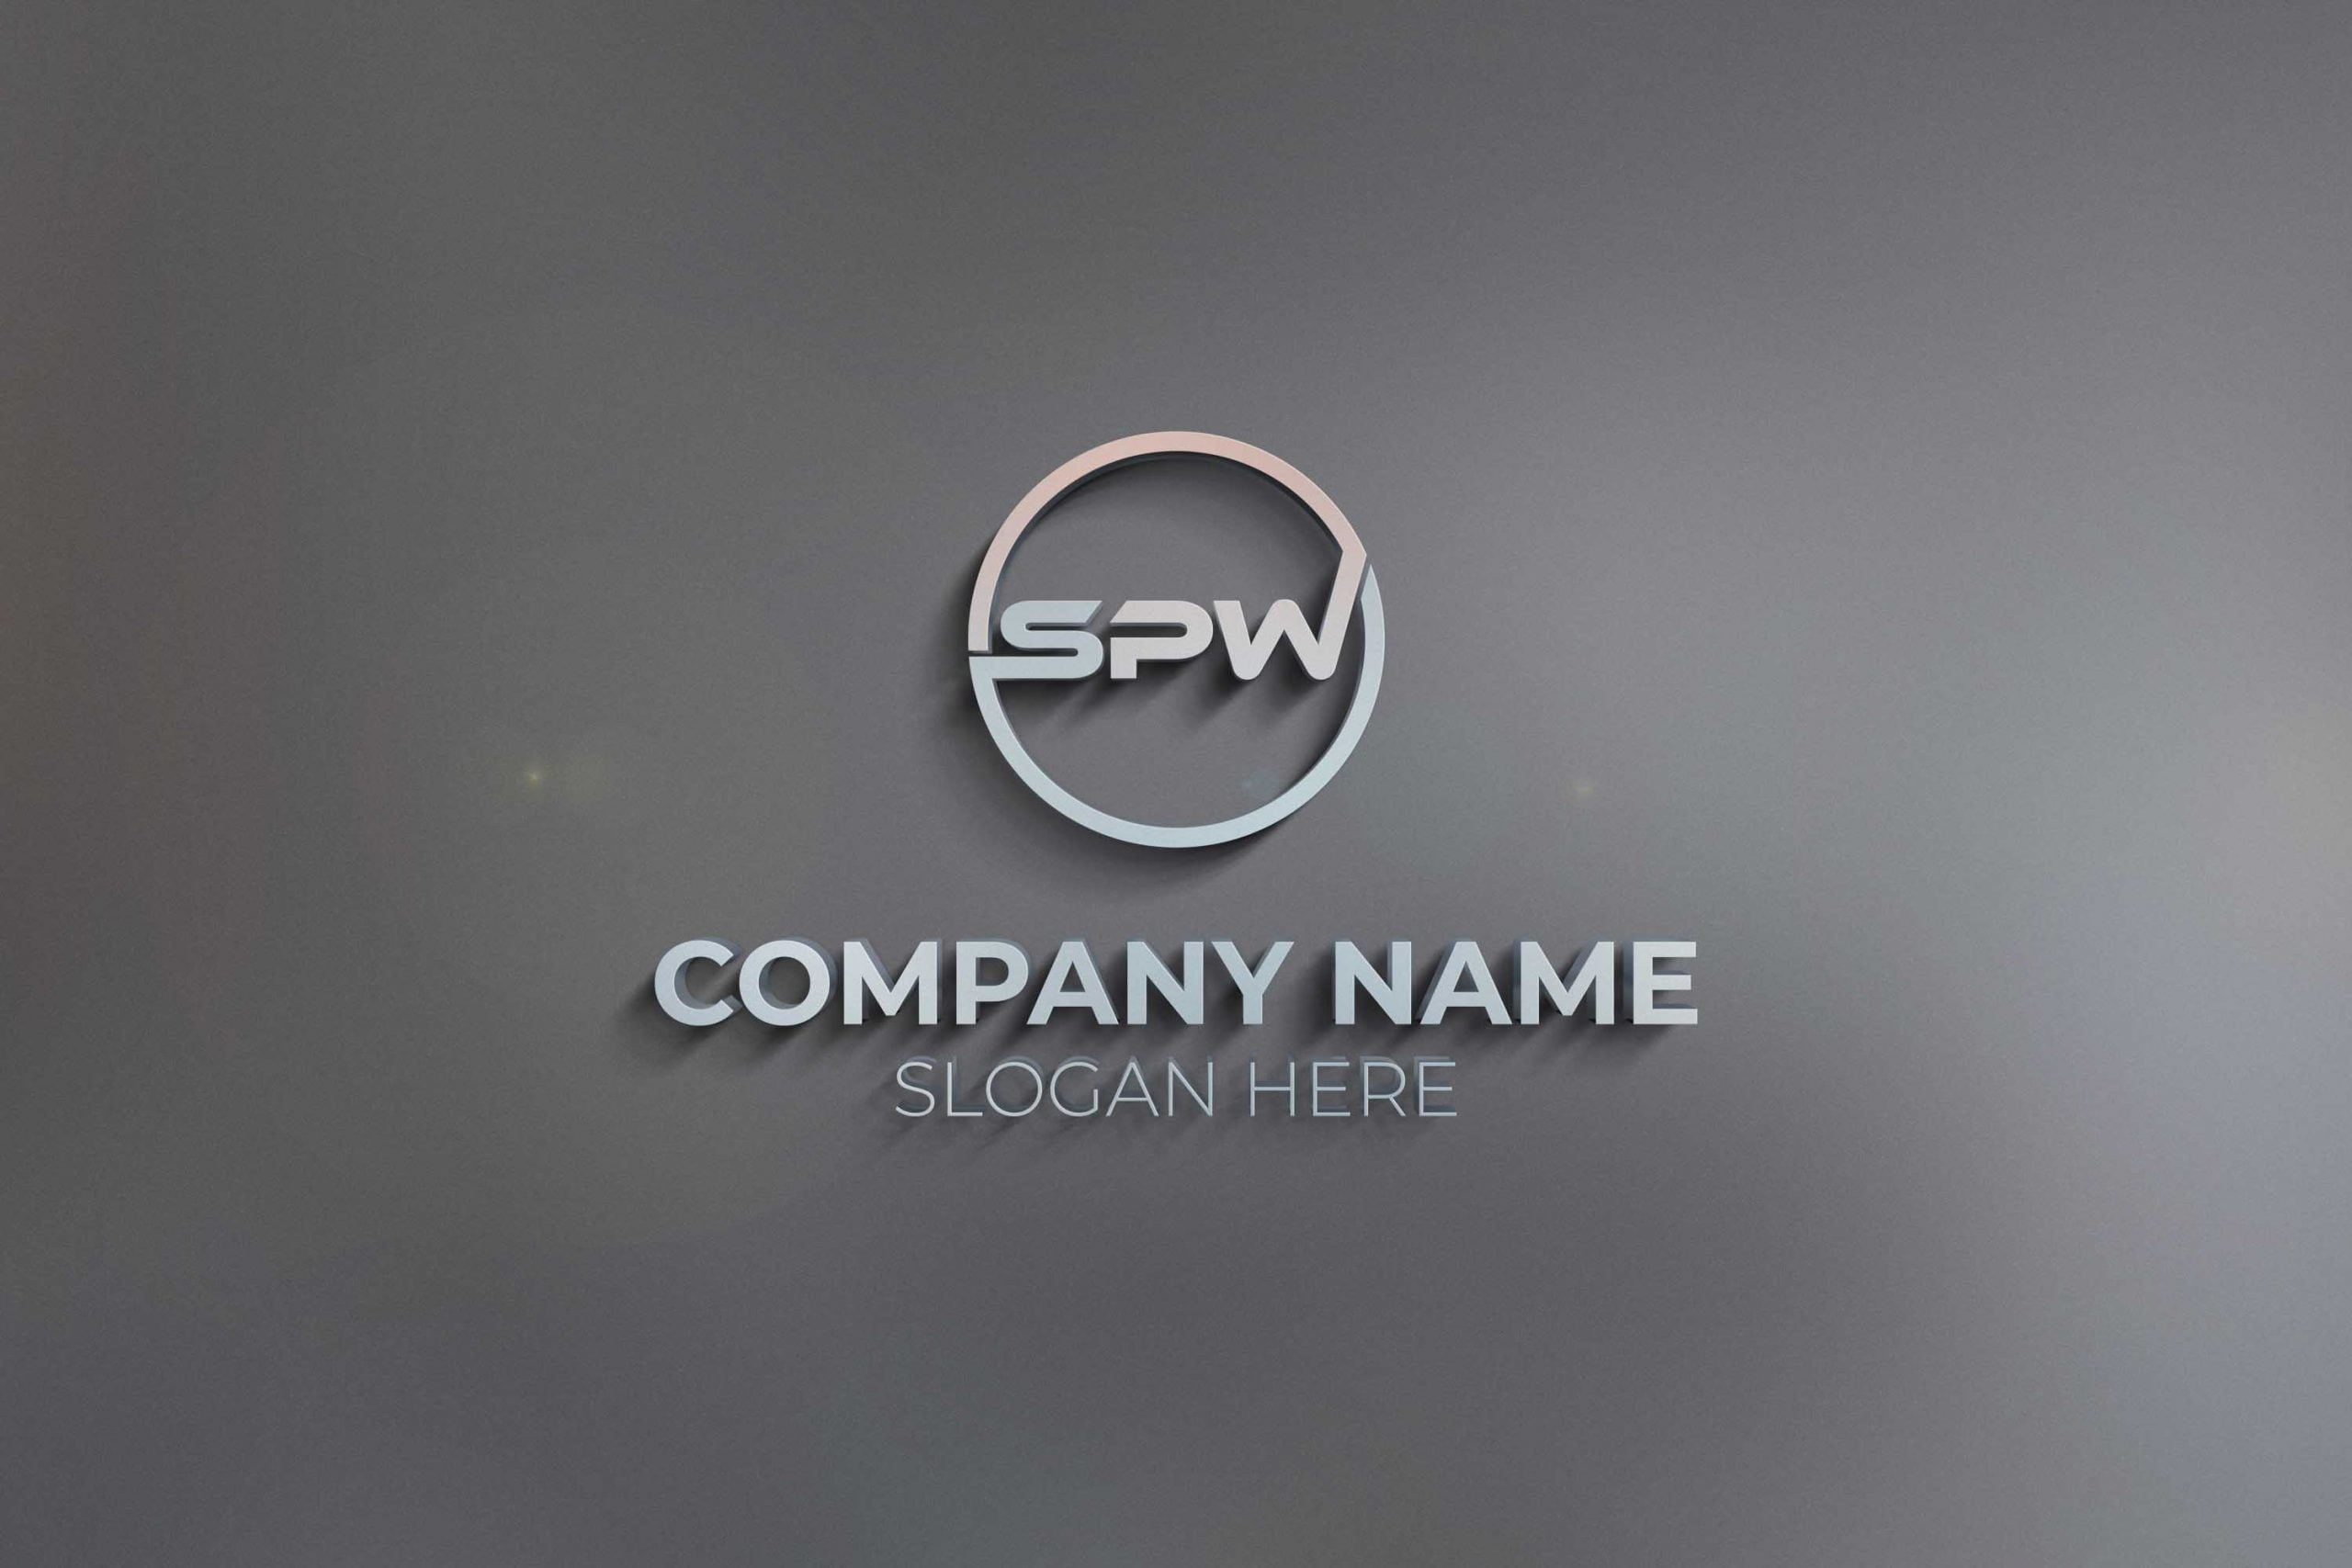 3D SPW LETTER LOGO ON WALL